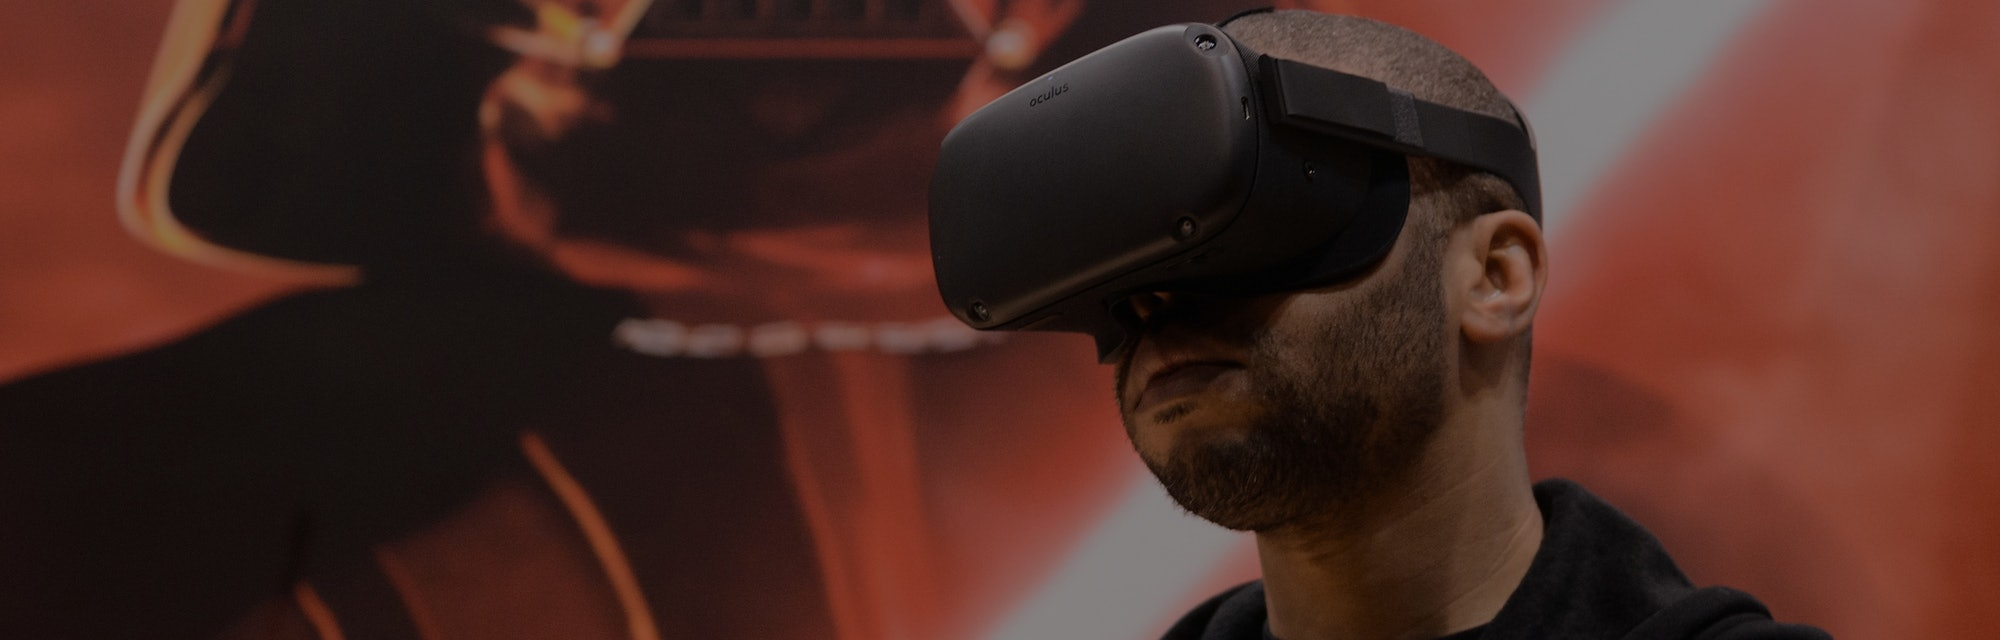 """CHICAGO, IL - APRIL 15:  An attendee plays the 'Vader Immortal: A Star Wars VR Series"""" experience on the Oculus Quest during Star Wars Celebration at McCormick Place Convention Center on April 15, 2019 in Chicago, Illinois.  (Photo by Daniel Boczarski/FilmMagic)"""